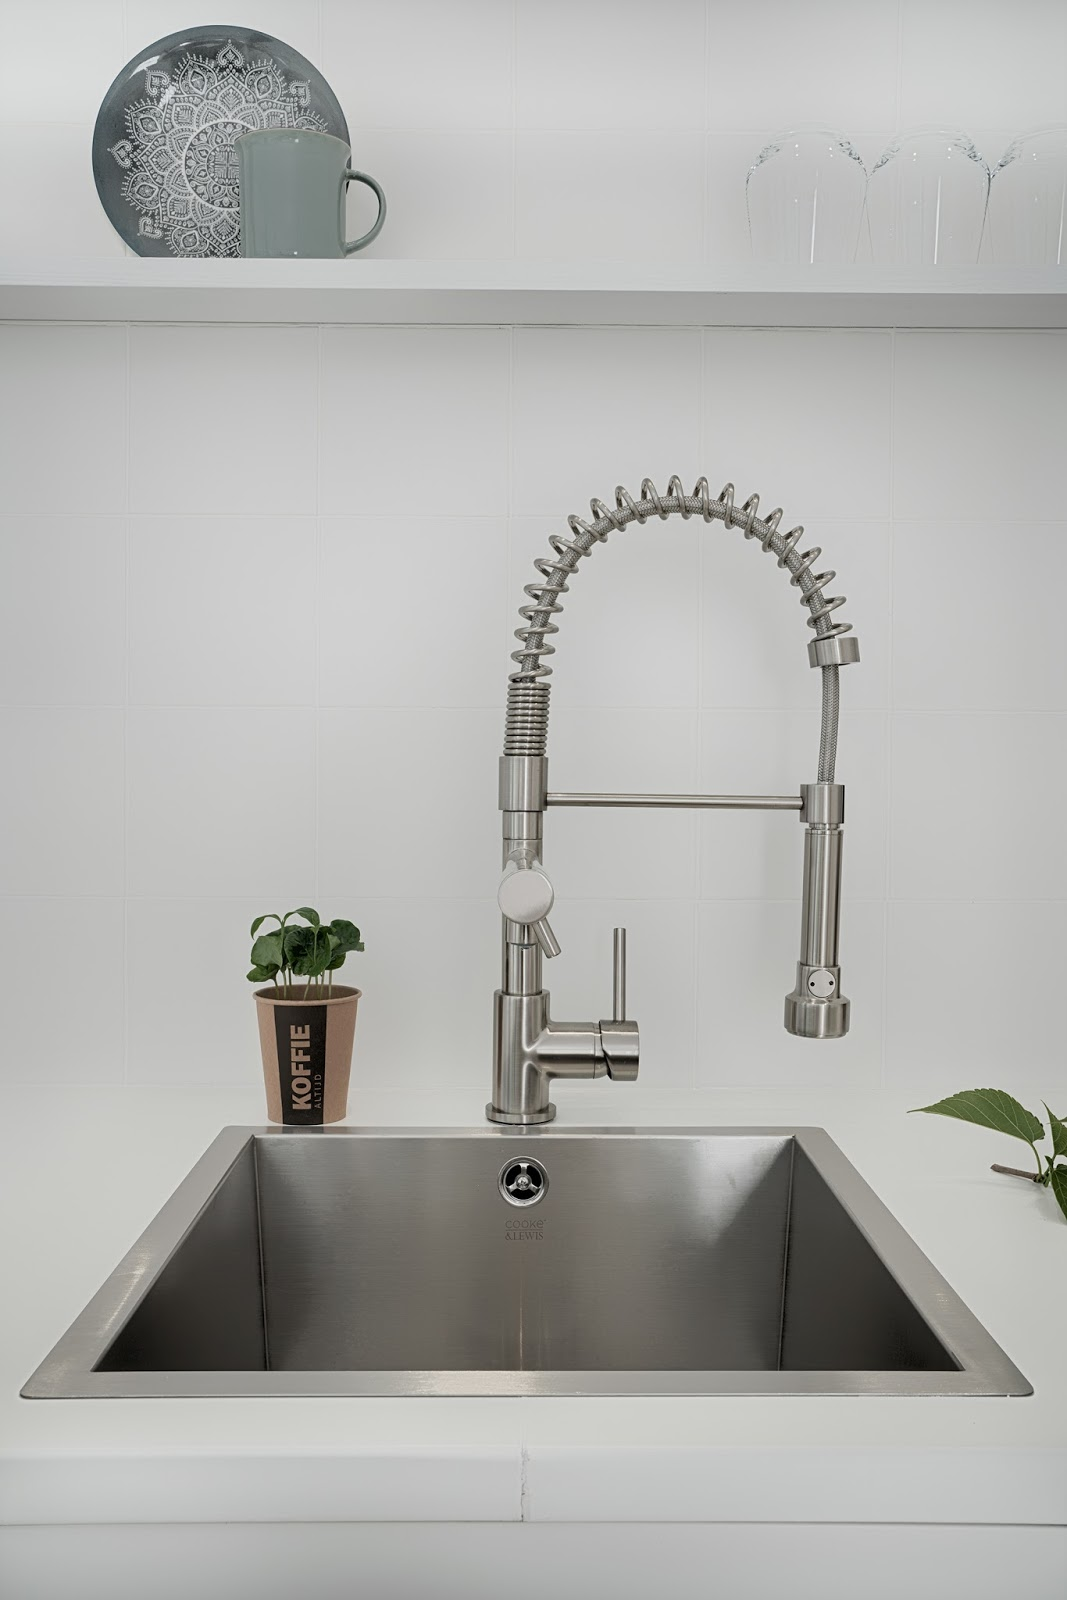 fregadero, sink, decoration, interior, nordic, cocina, kitchen, grifo, scandinavian, interior, decoracion